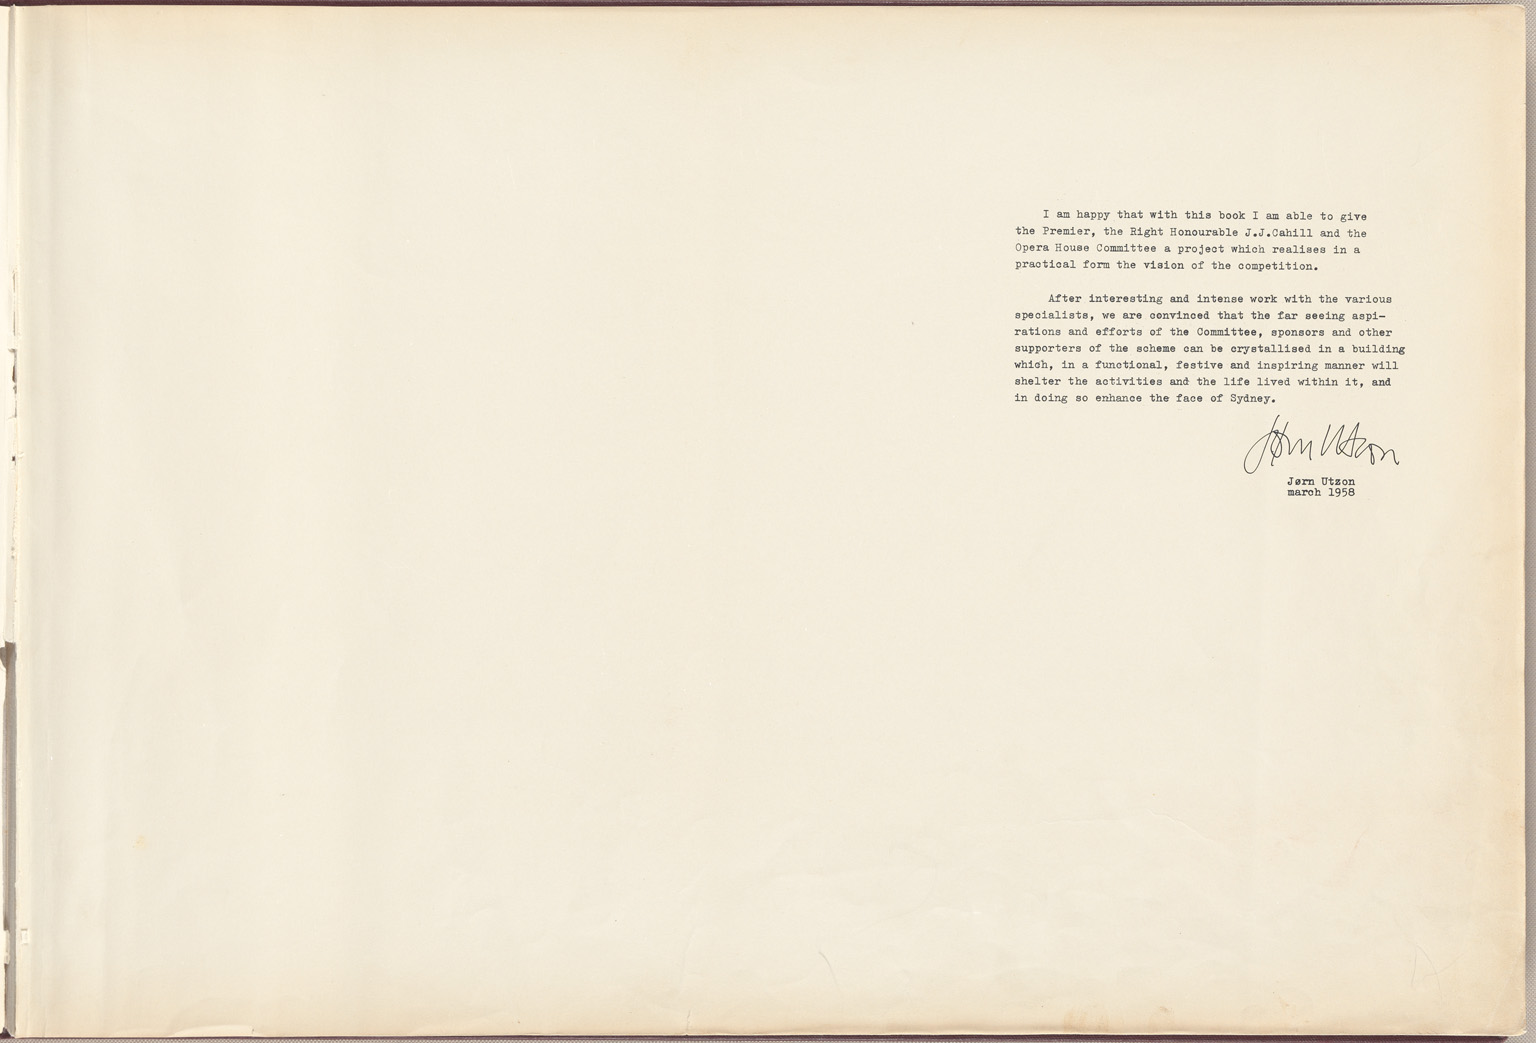 Message by Jorn Utzon Sydney Opera House Red Book